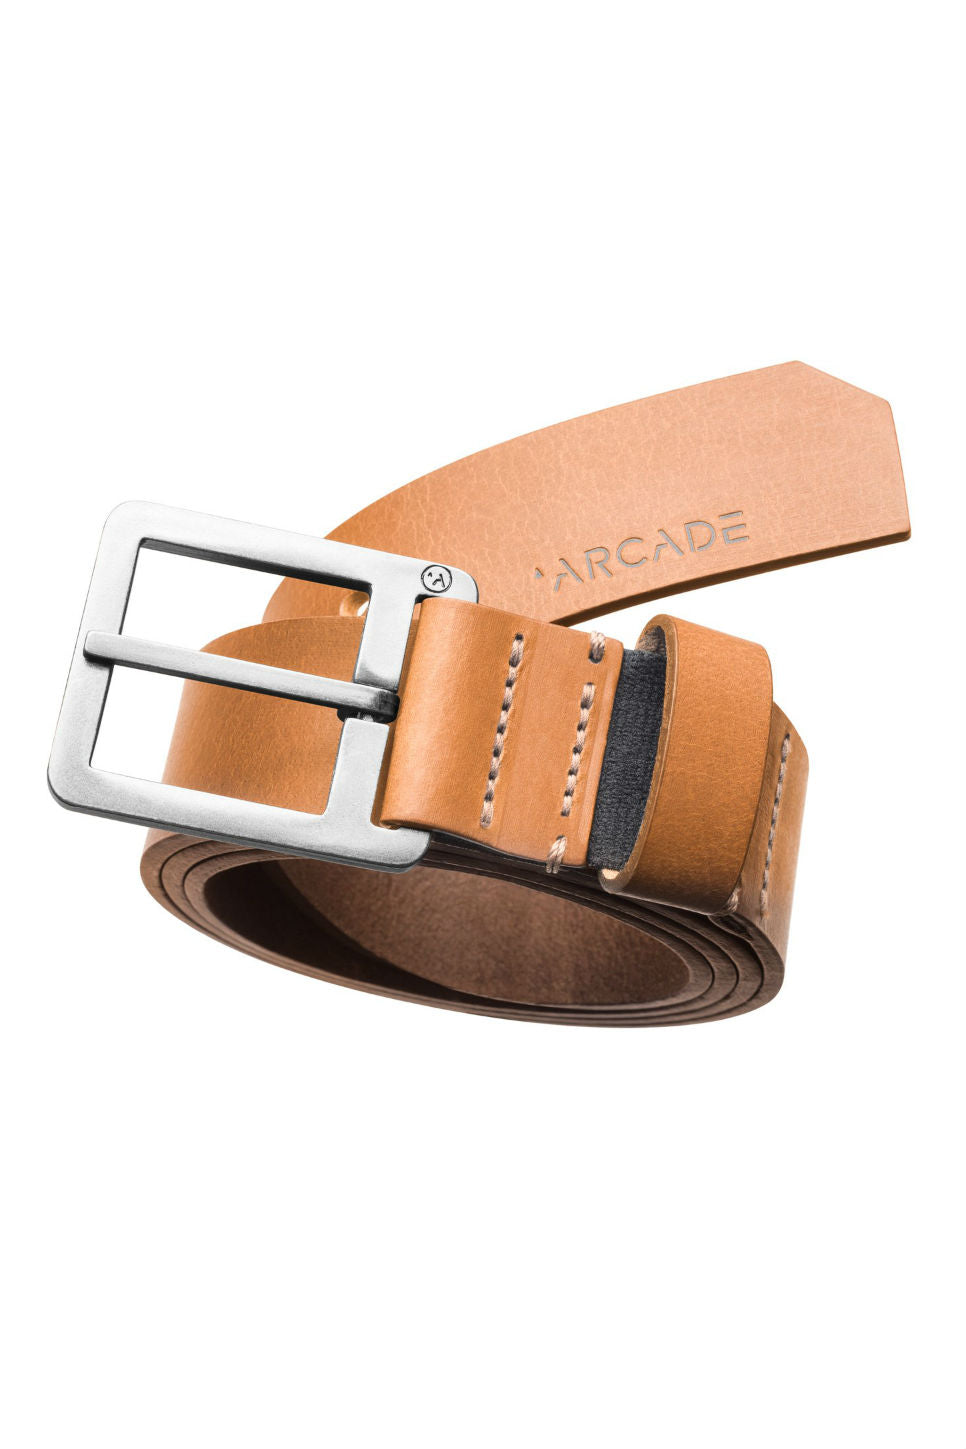 Arcade - Padre Belt - Tan